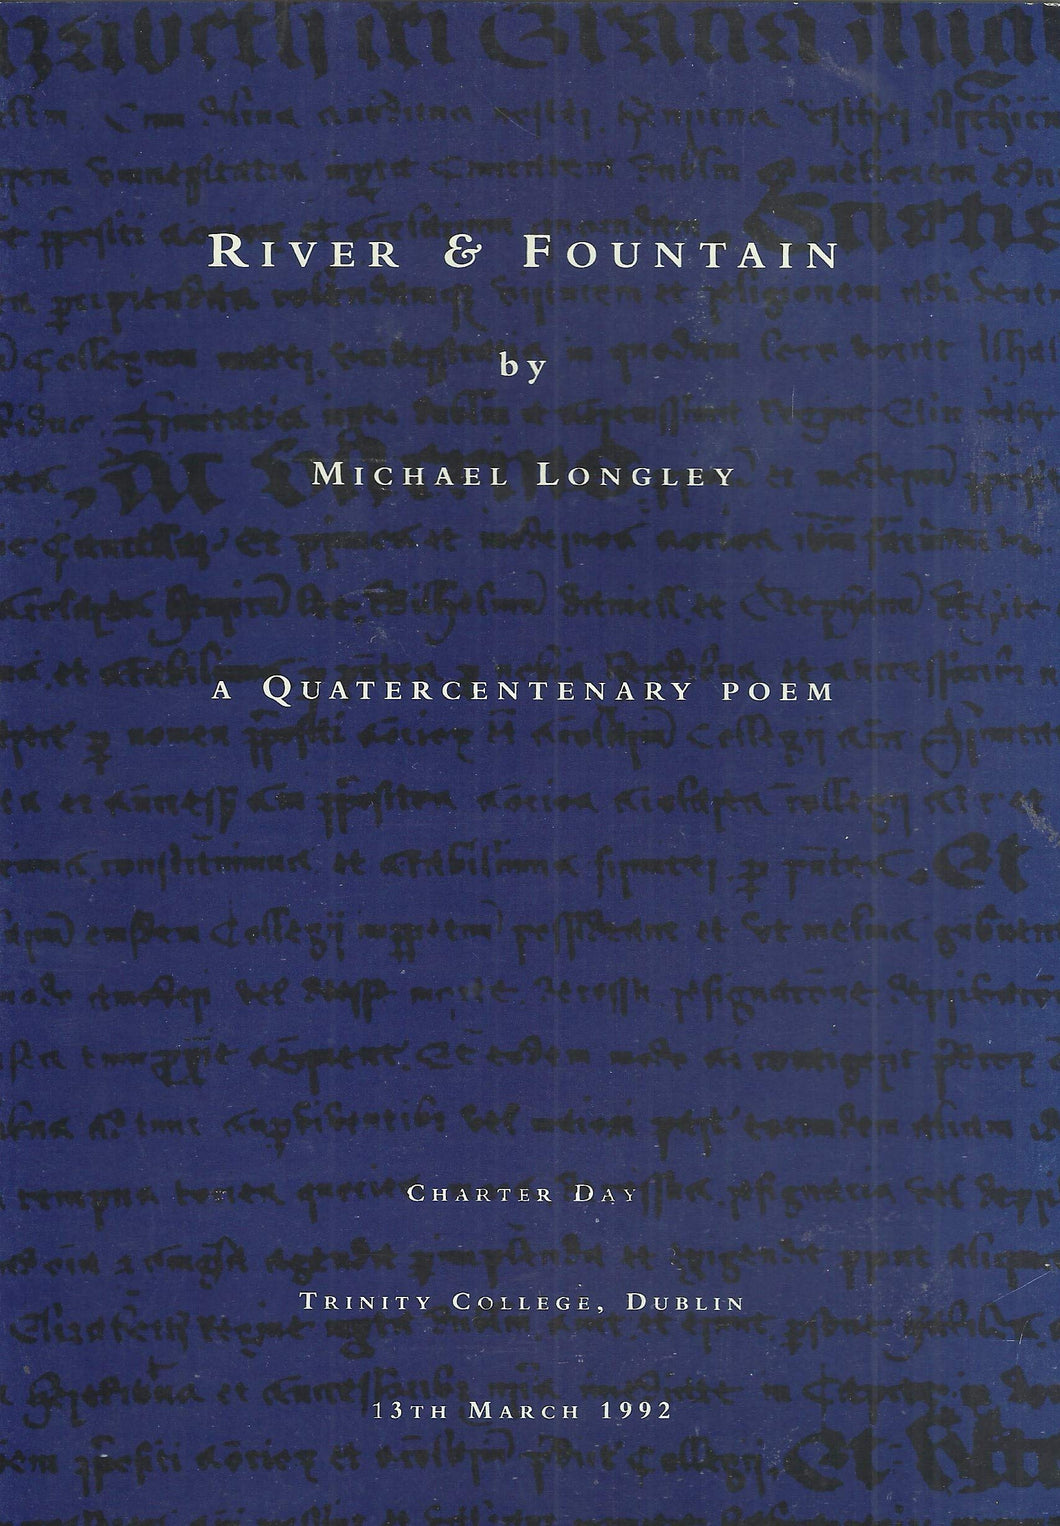 River and Fountain: A Quatercentenary Poem - Charter Day, Trinity College, Dublin, 13th March 1992